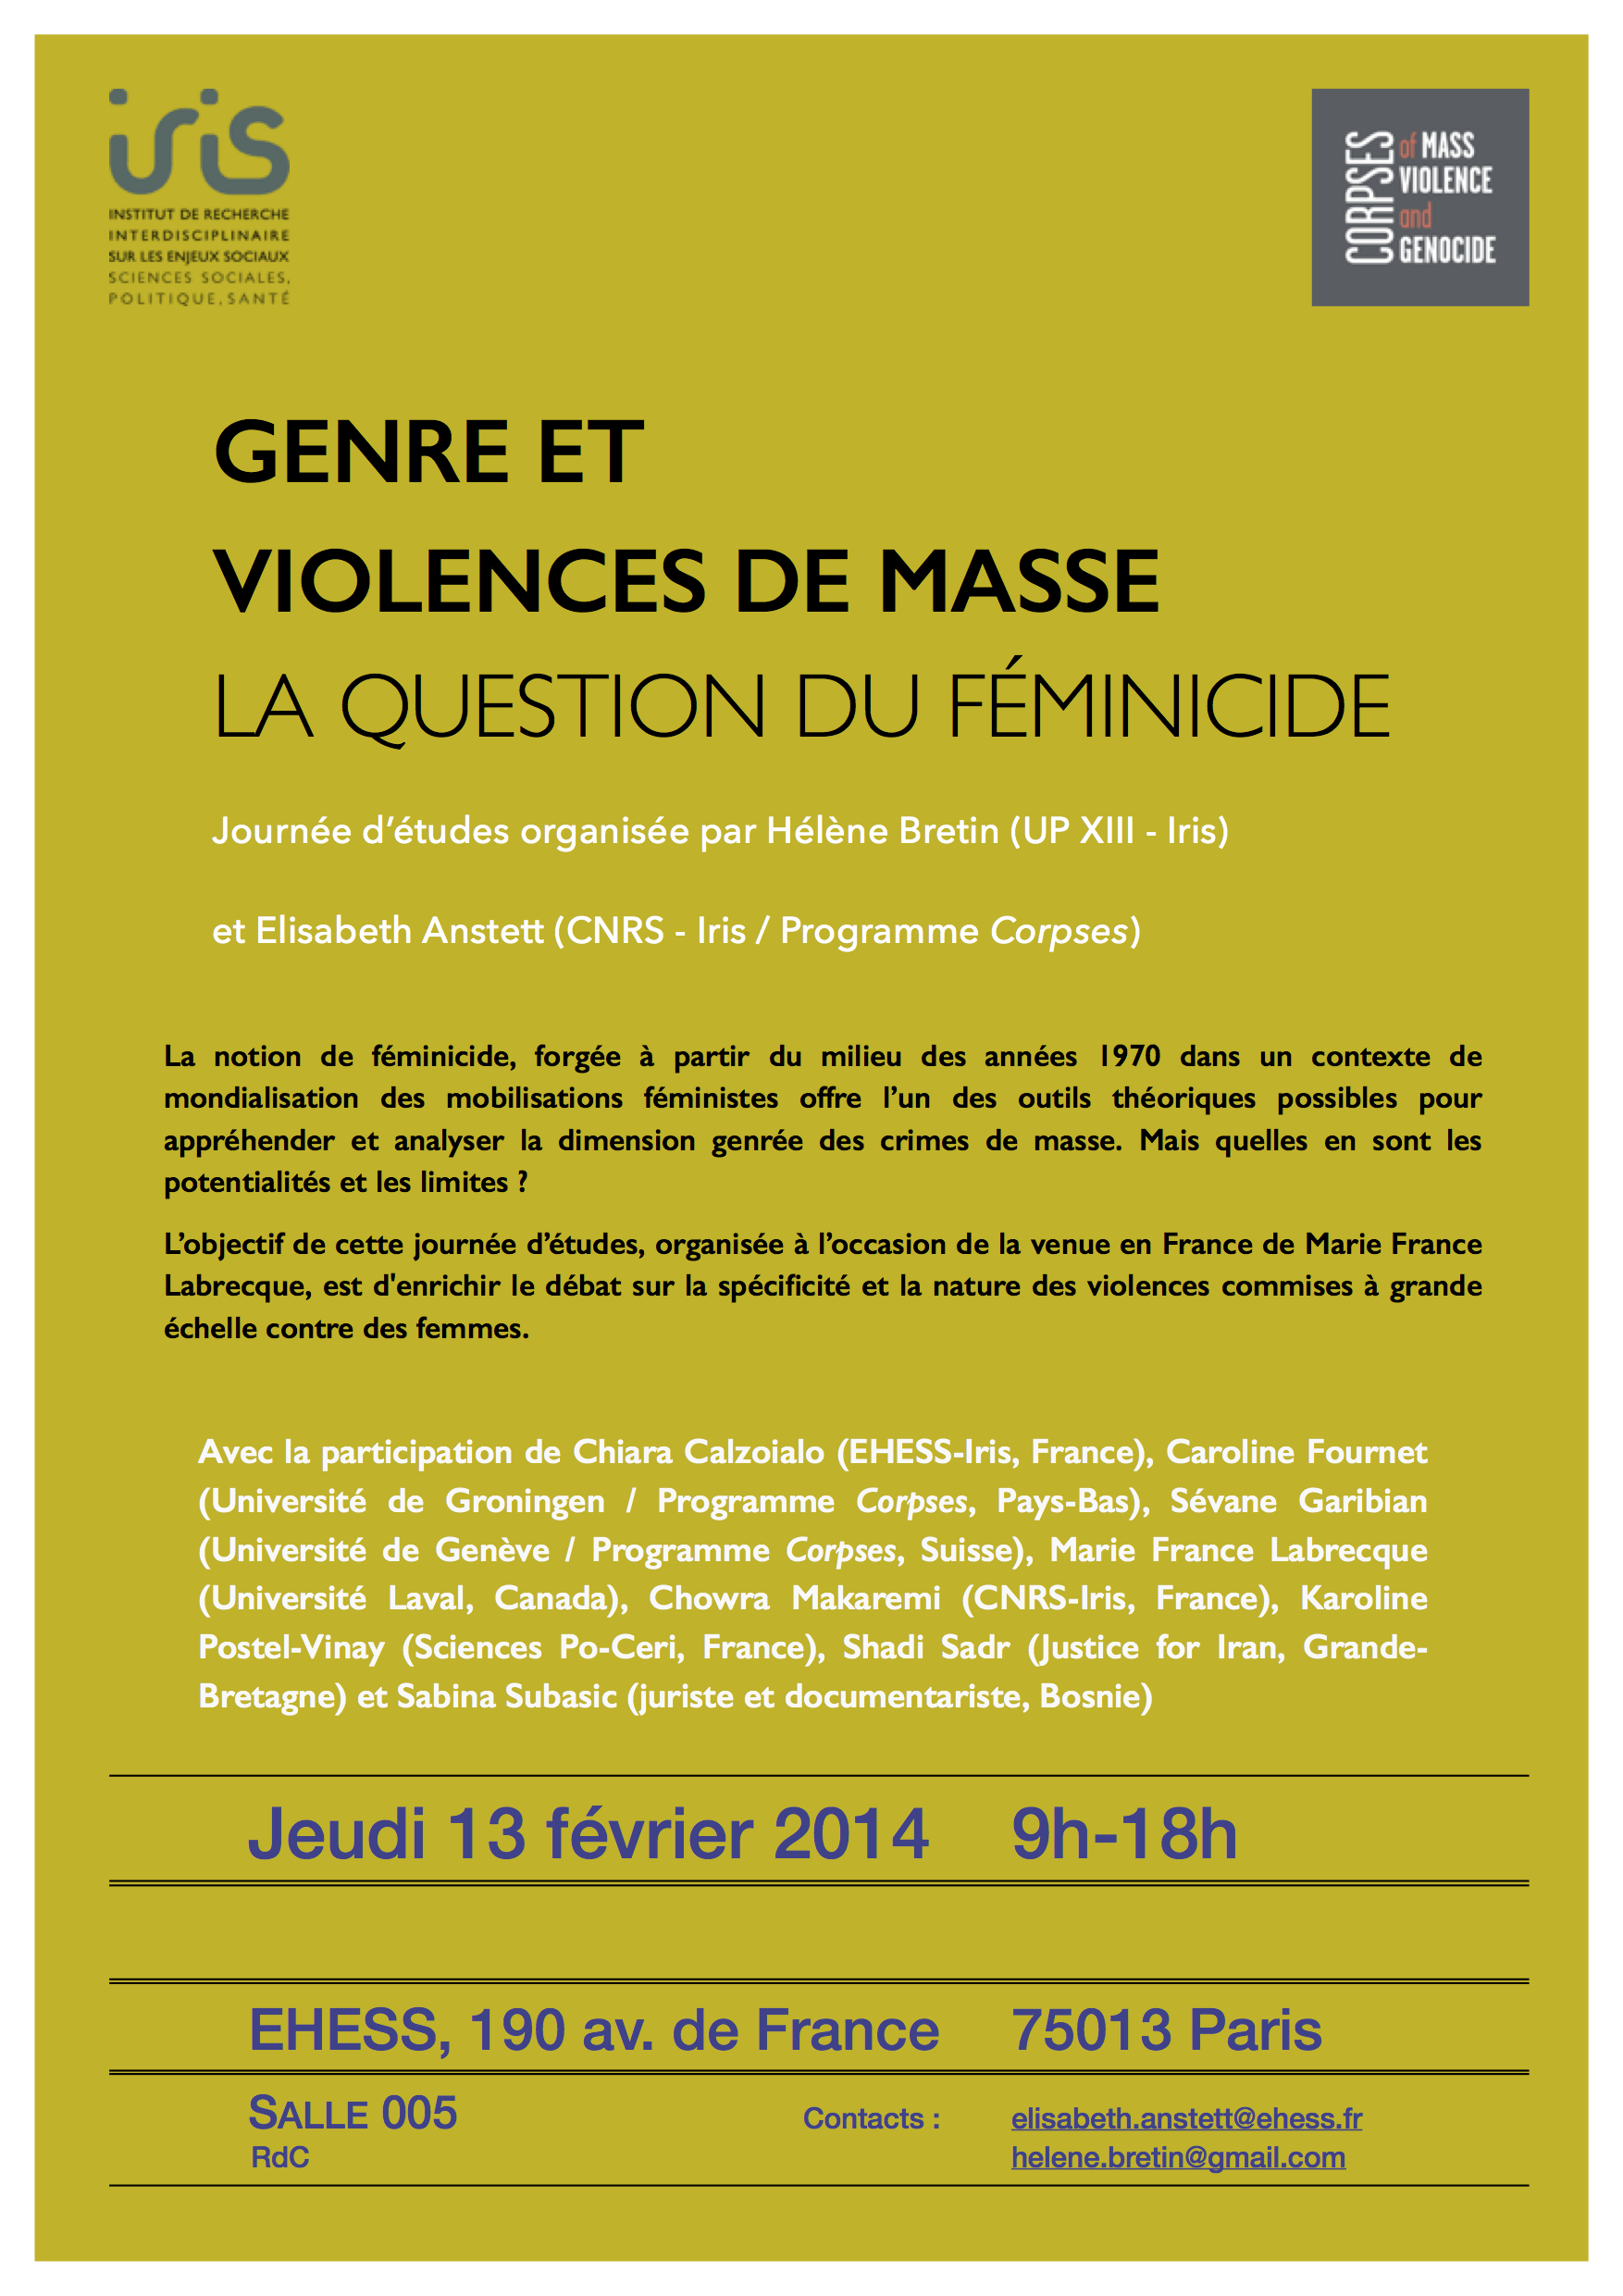 Genre et violences de masse. La question du féminicide > 13 février 2014